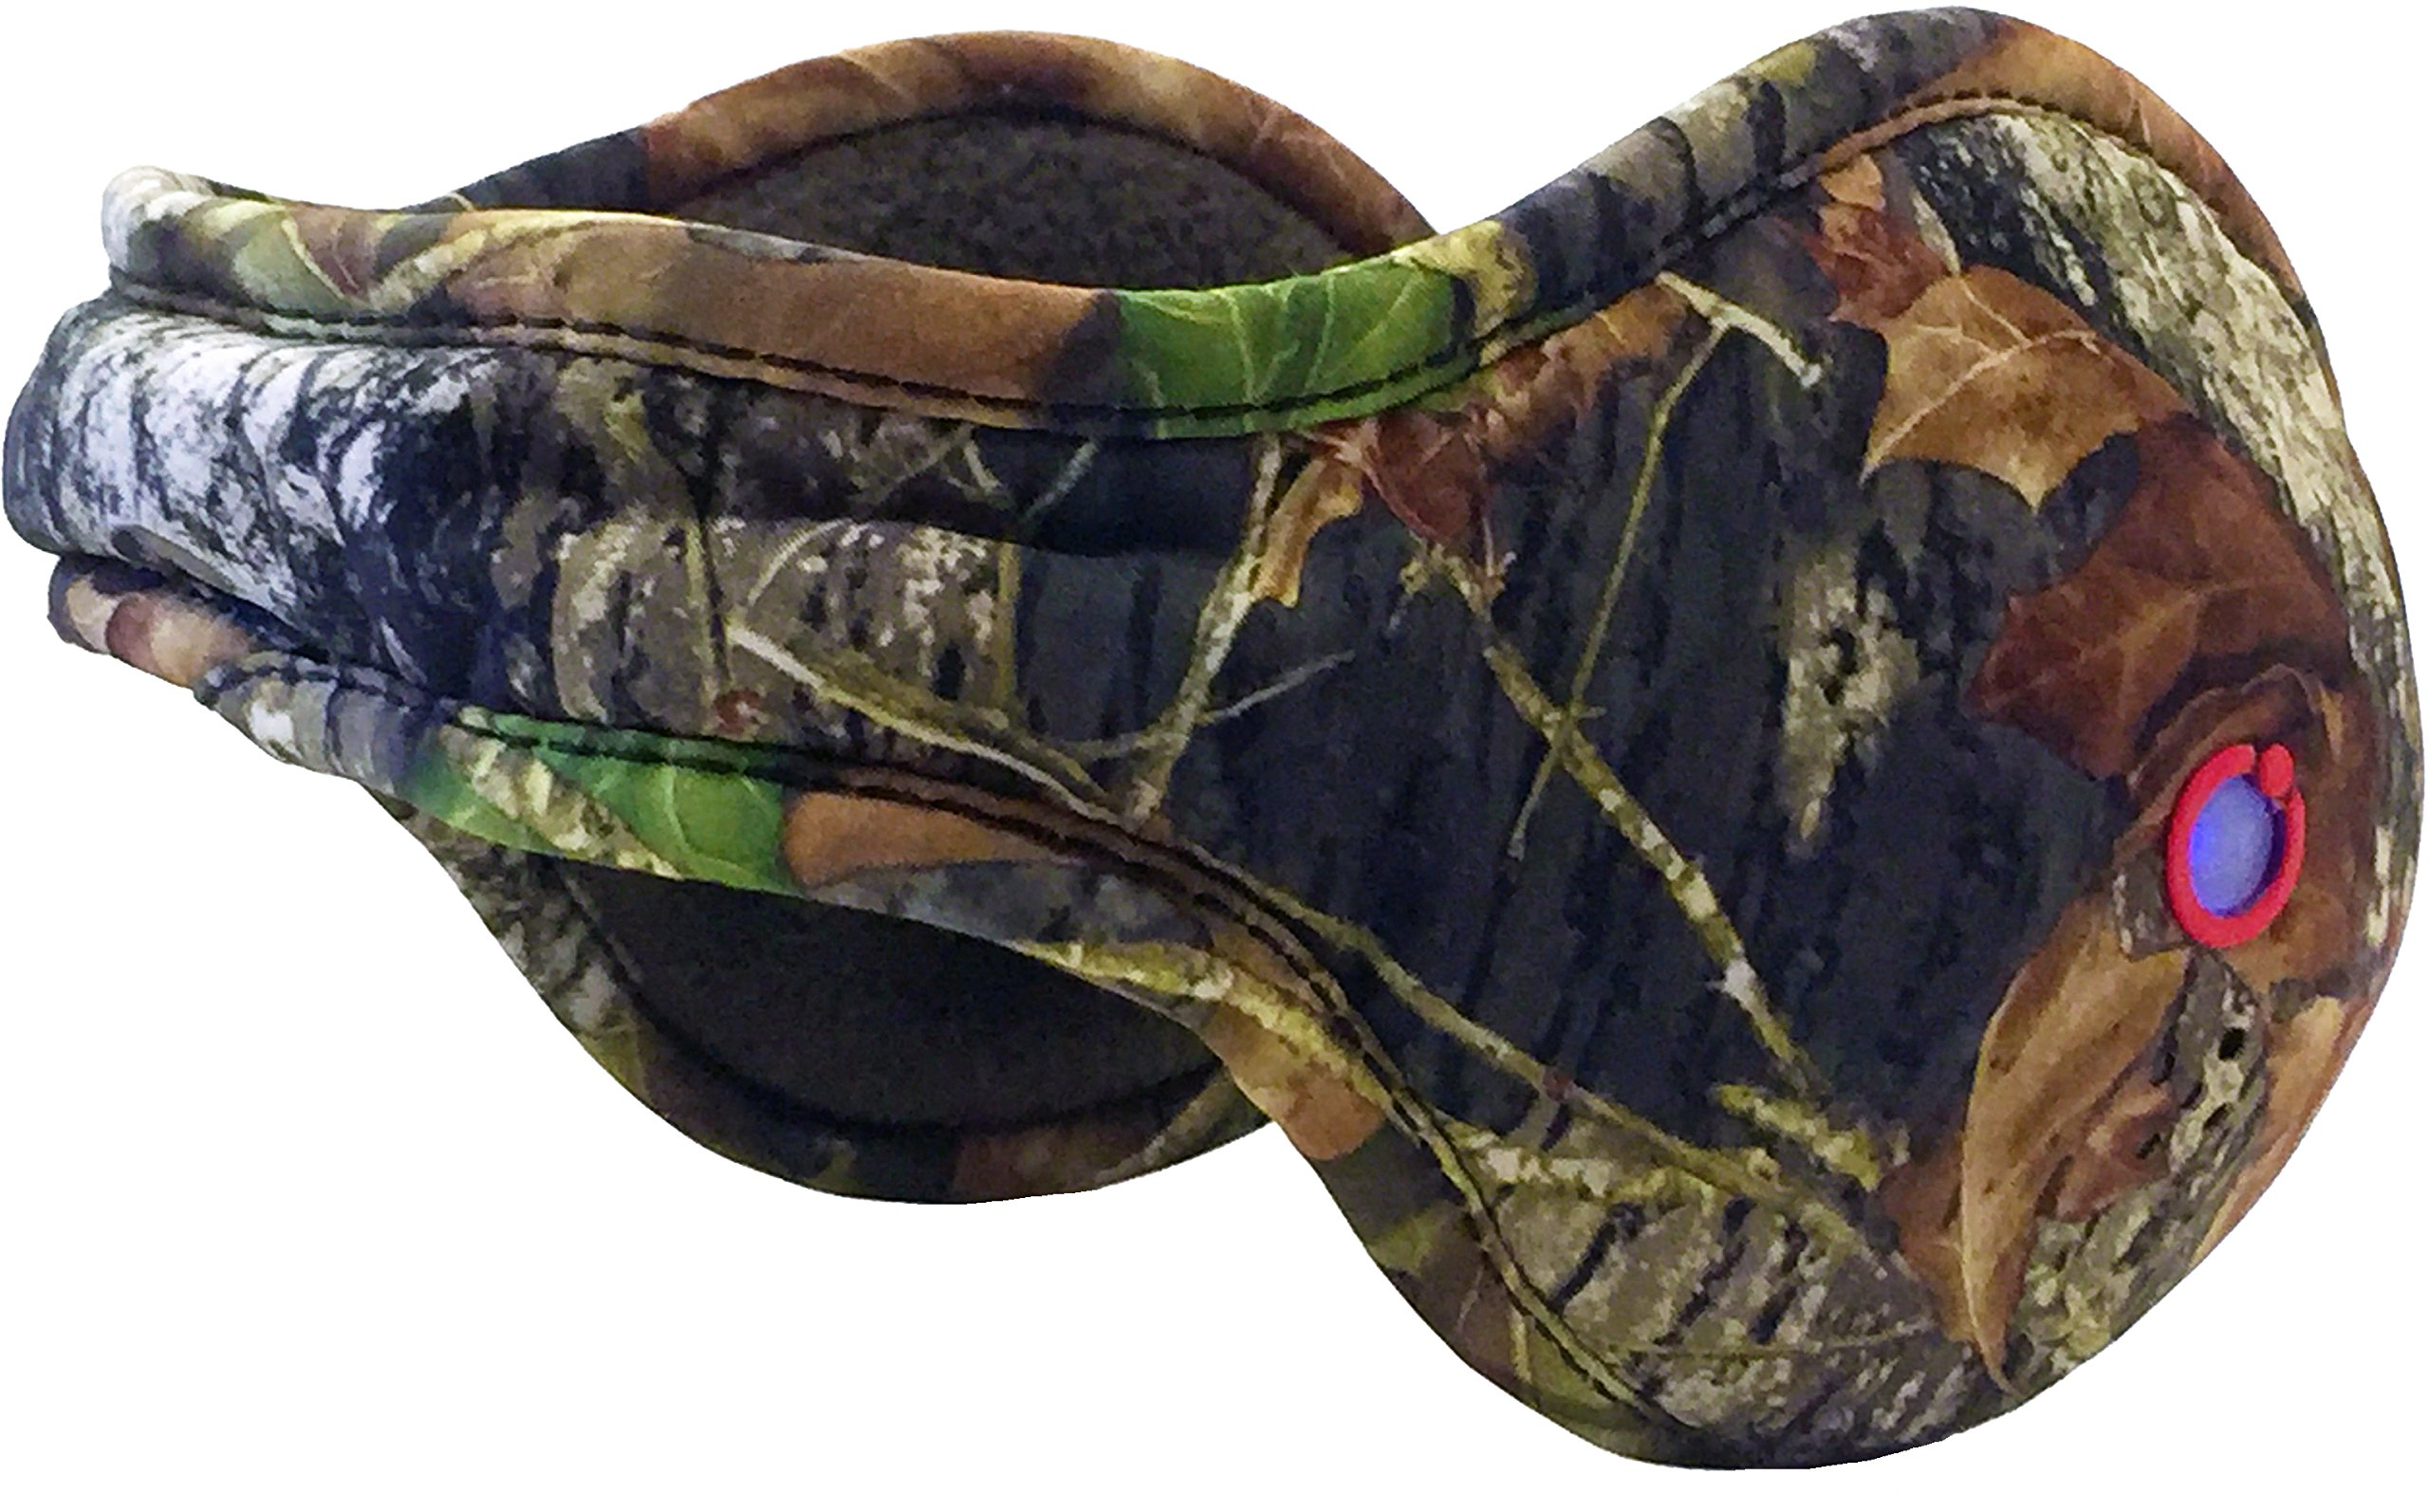 180s Unisex G3 - Generation III Bluetooth Ear Warmer, Camo Mossy Oak